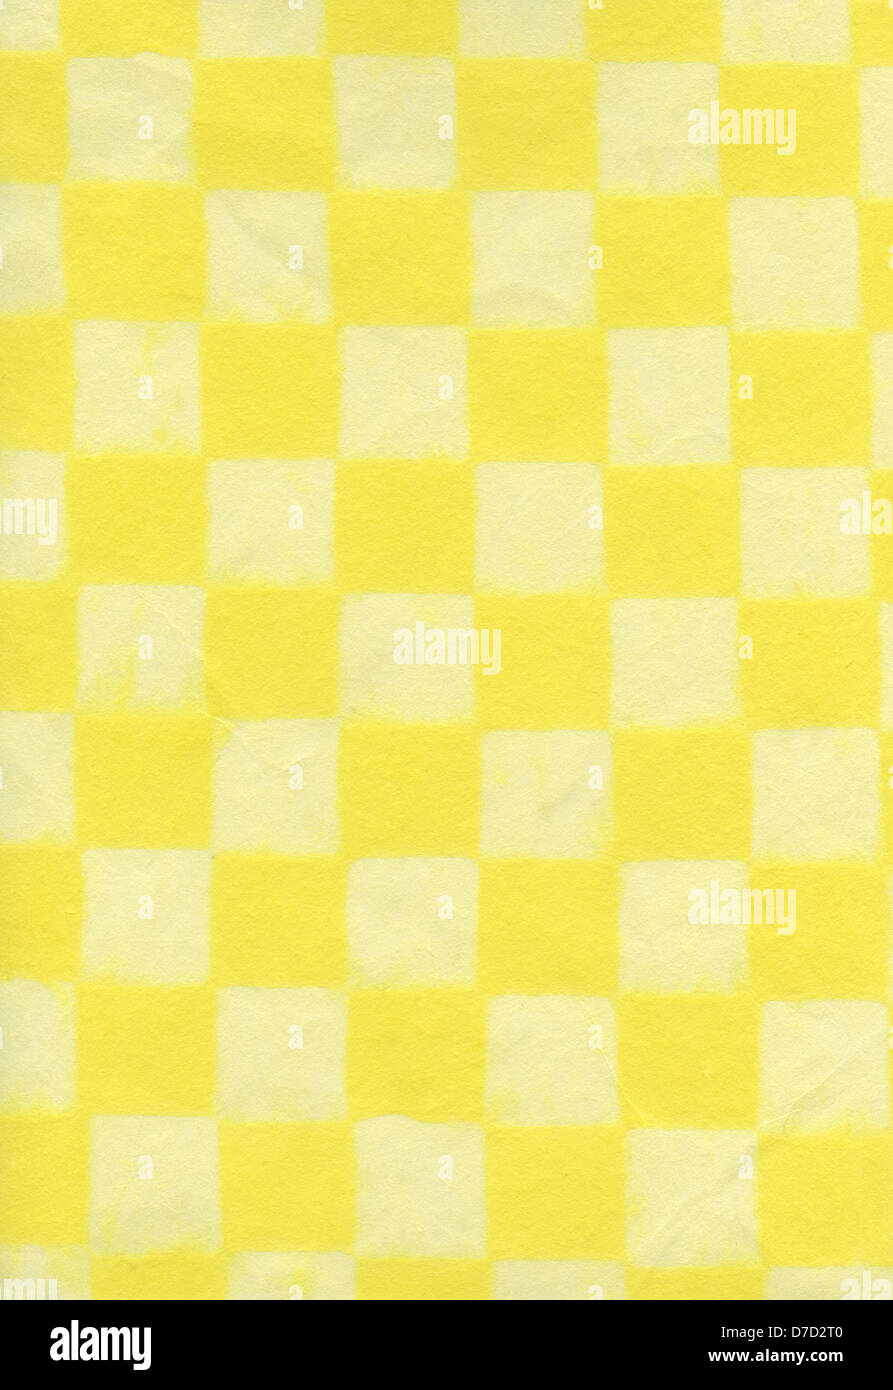 High Resolution Scan Rice Paper Checkered Bright Pastel Yellow Scanned At 1200dpi Using Professional Epson V700 Scanner